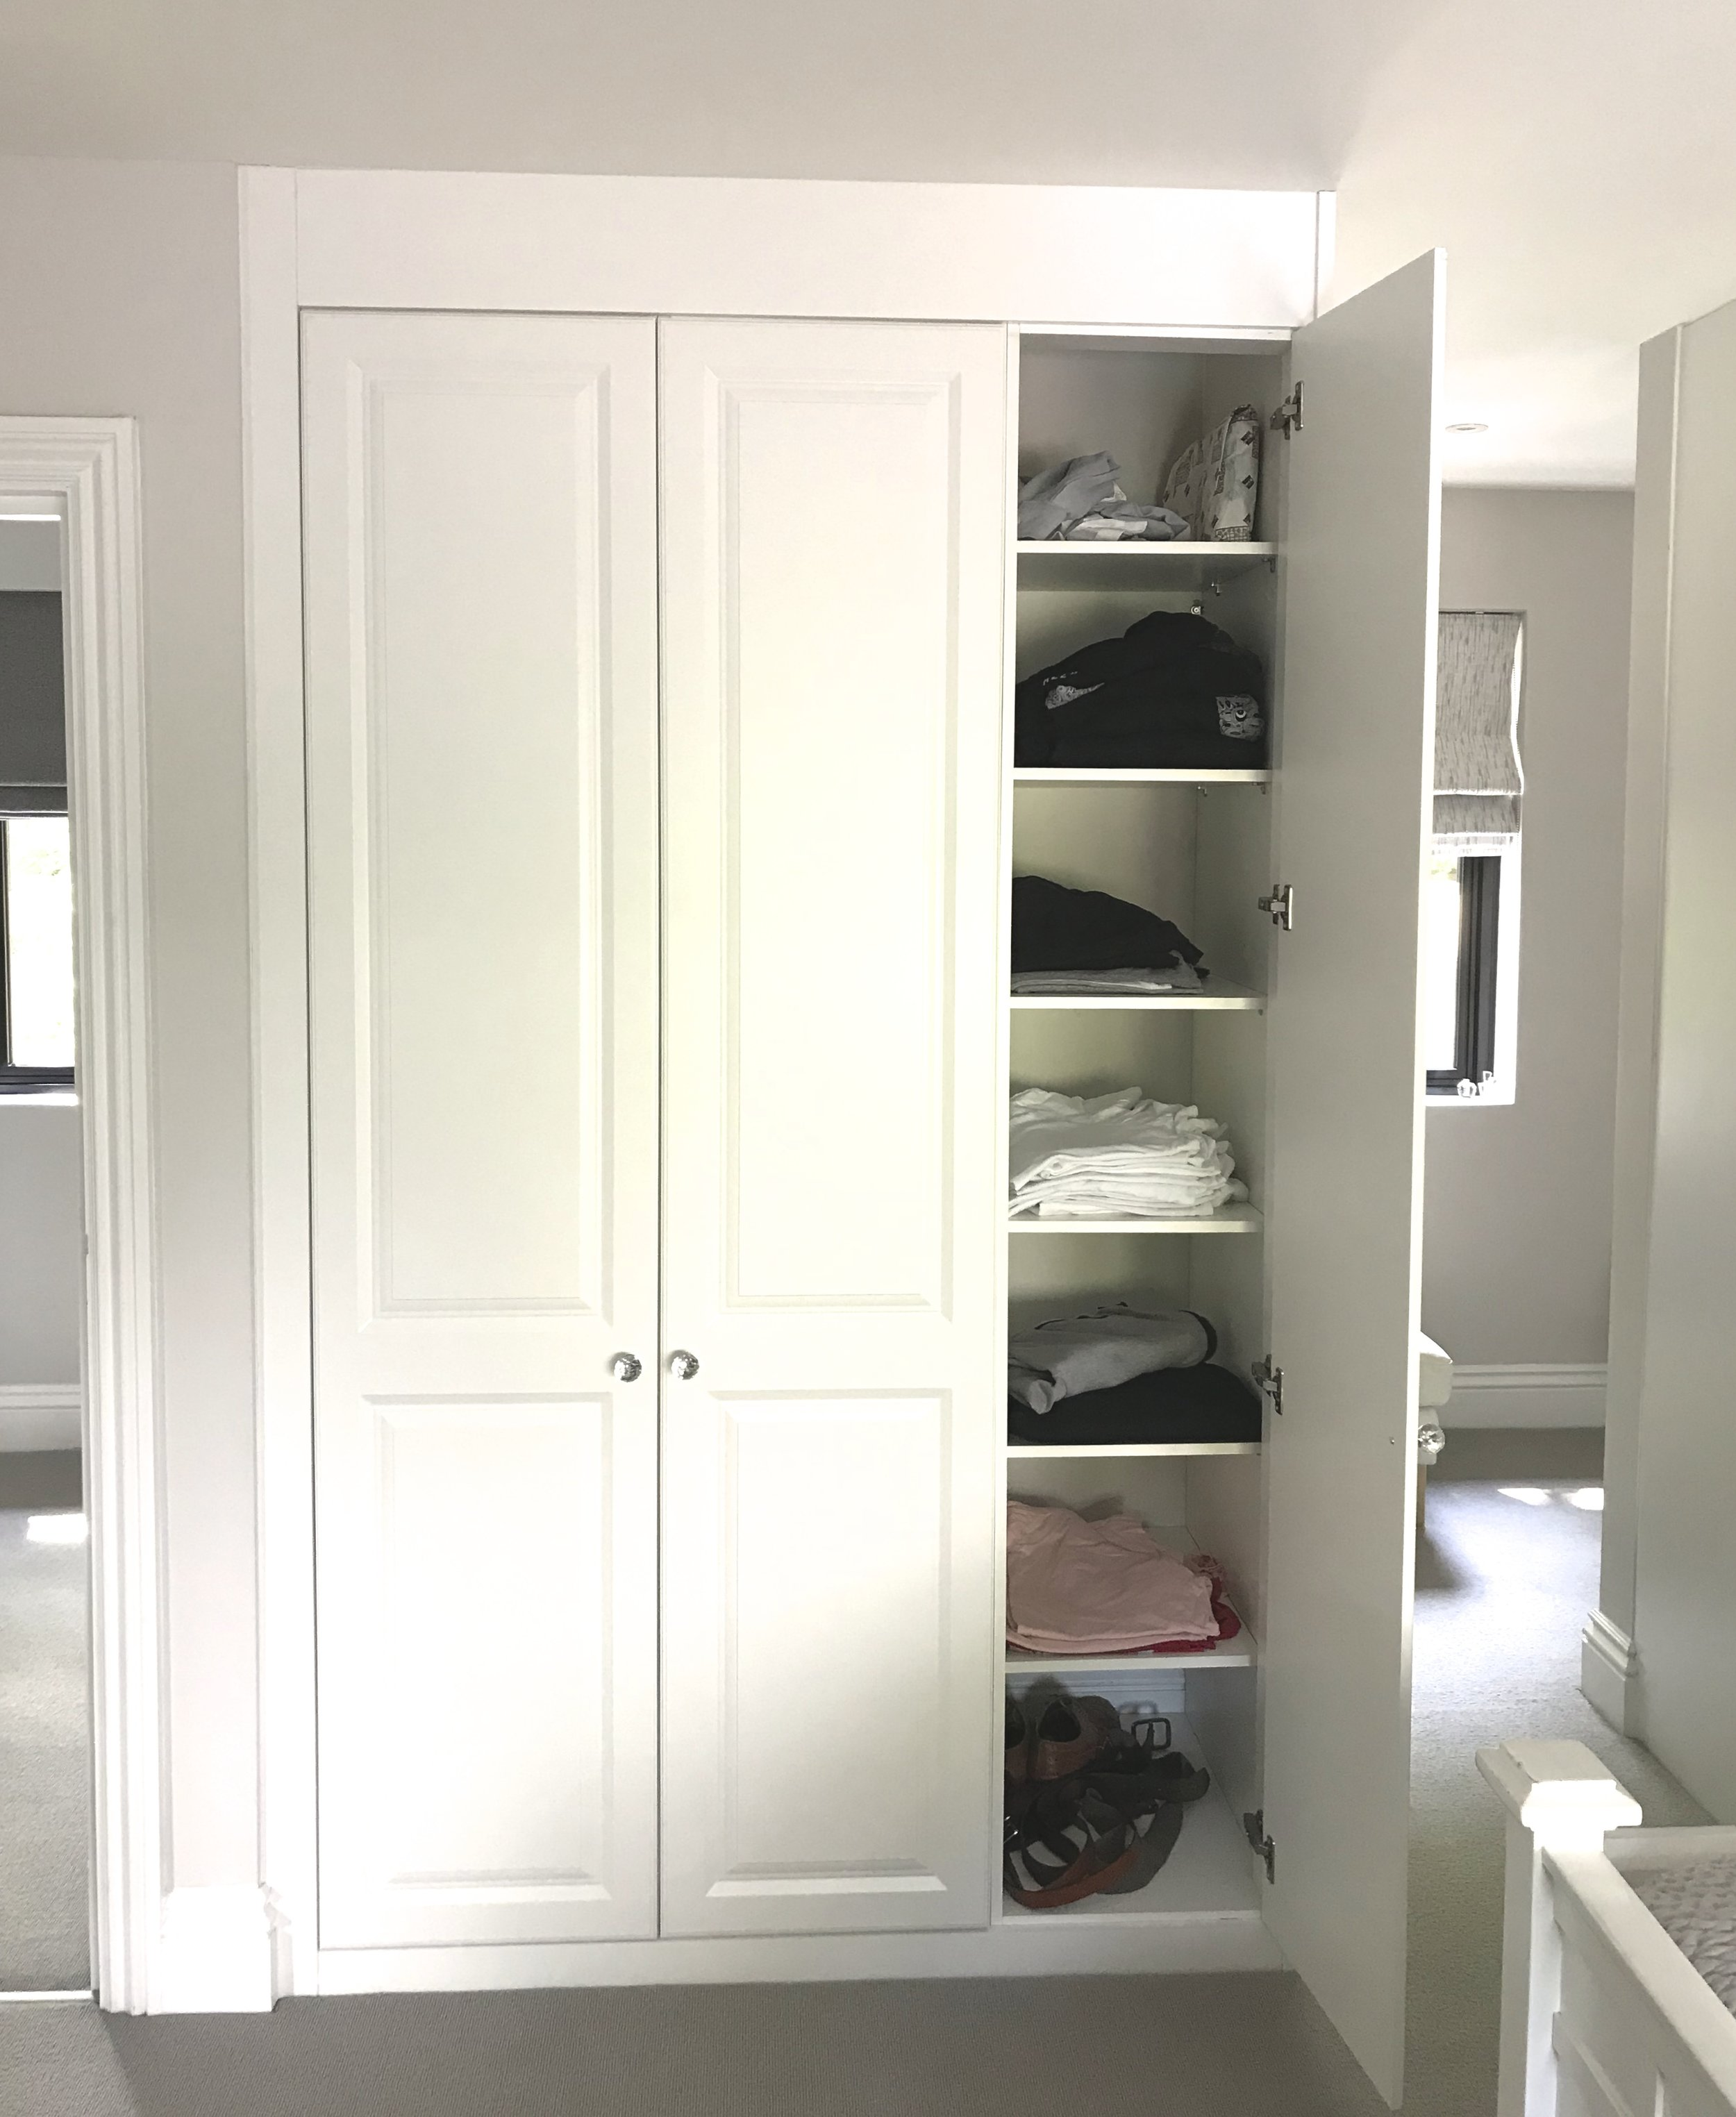 Floor to celling fitted wardrobes